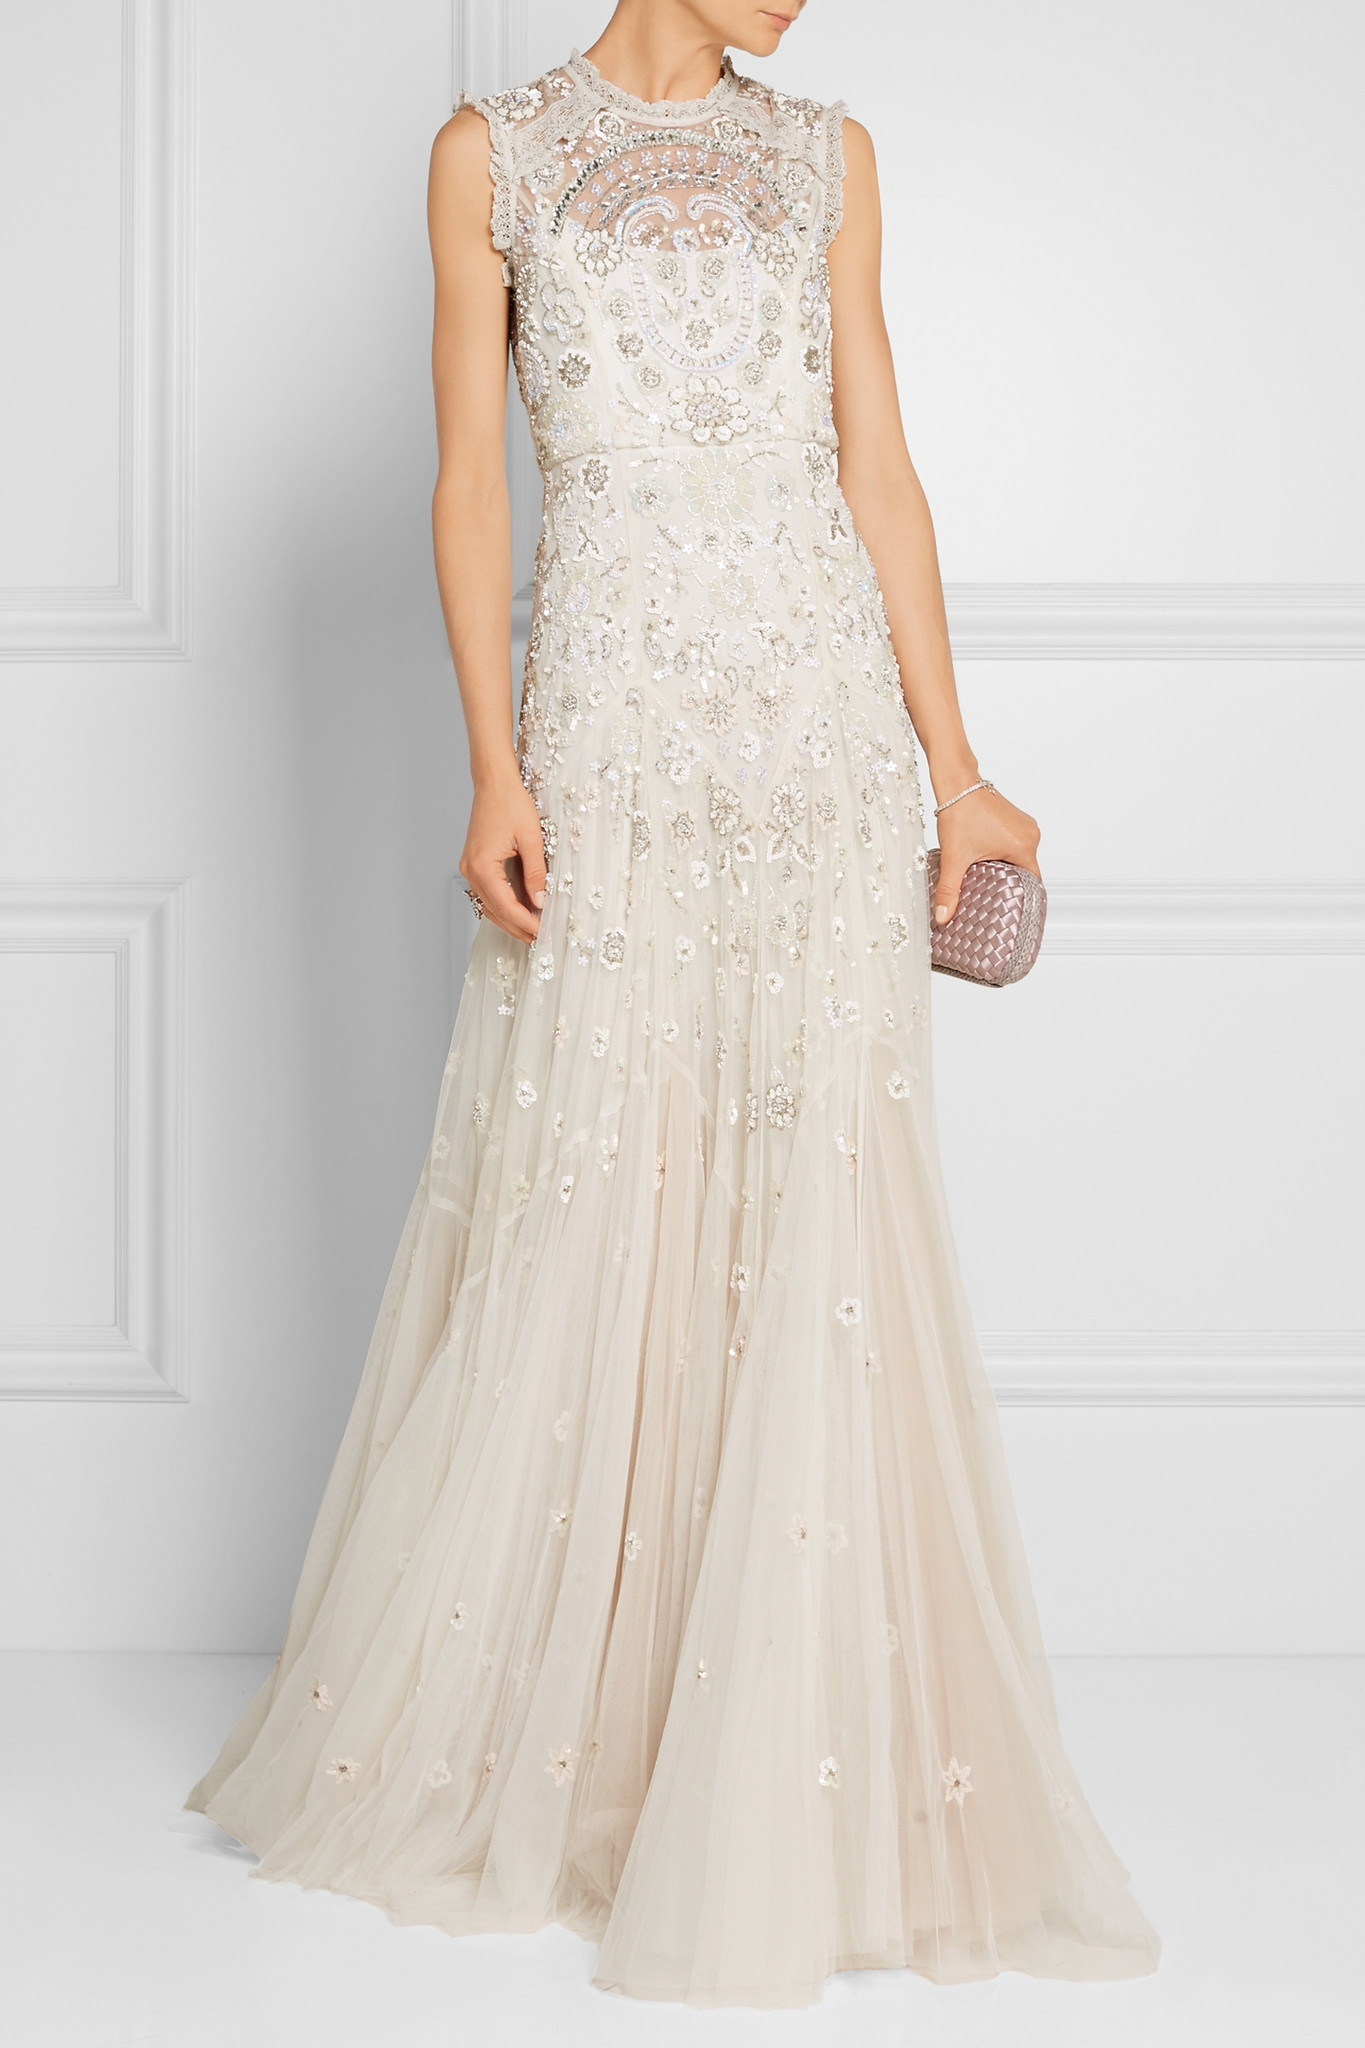 21a13edb2f18 Lyst - Needle   Thread Bridal Lace-Trimmed Embellished Tulle Gown in ...